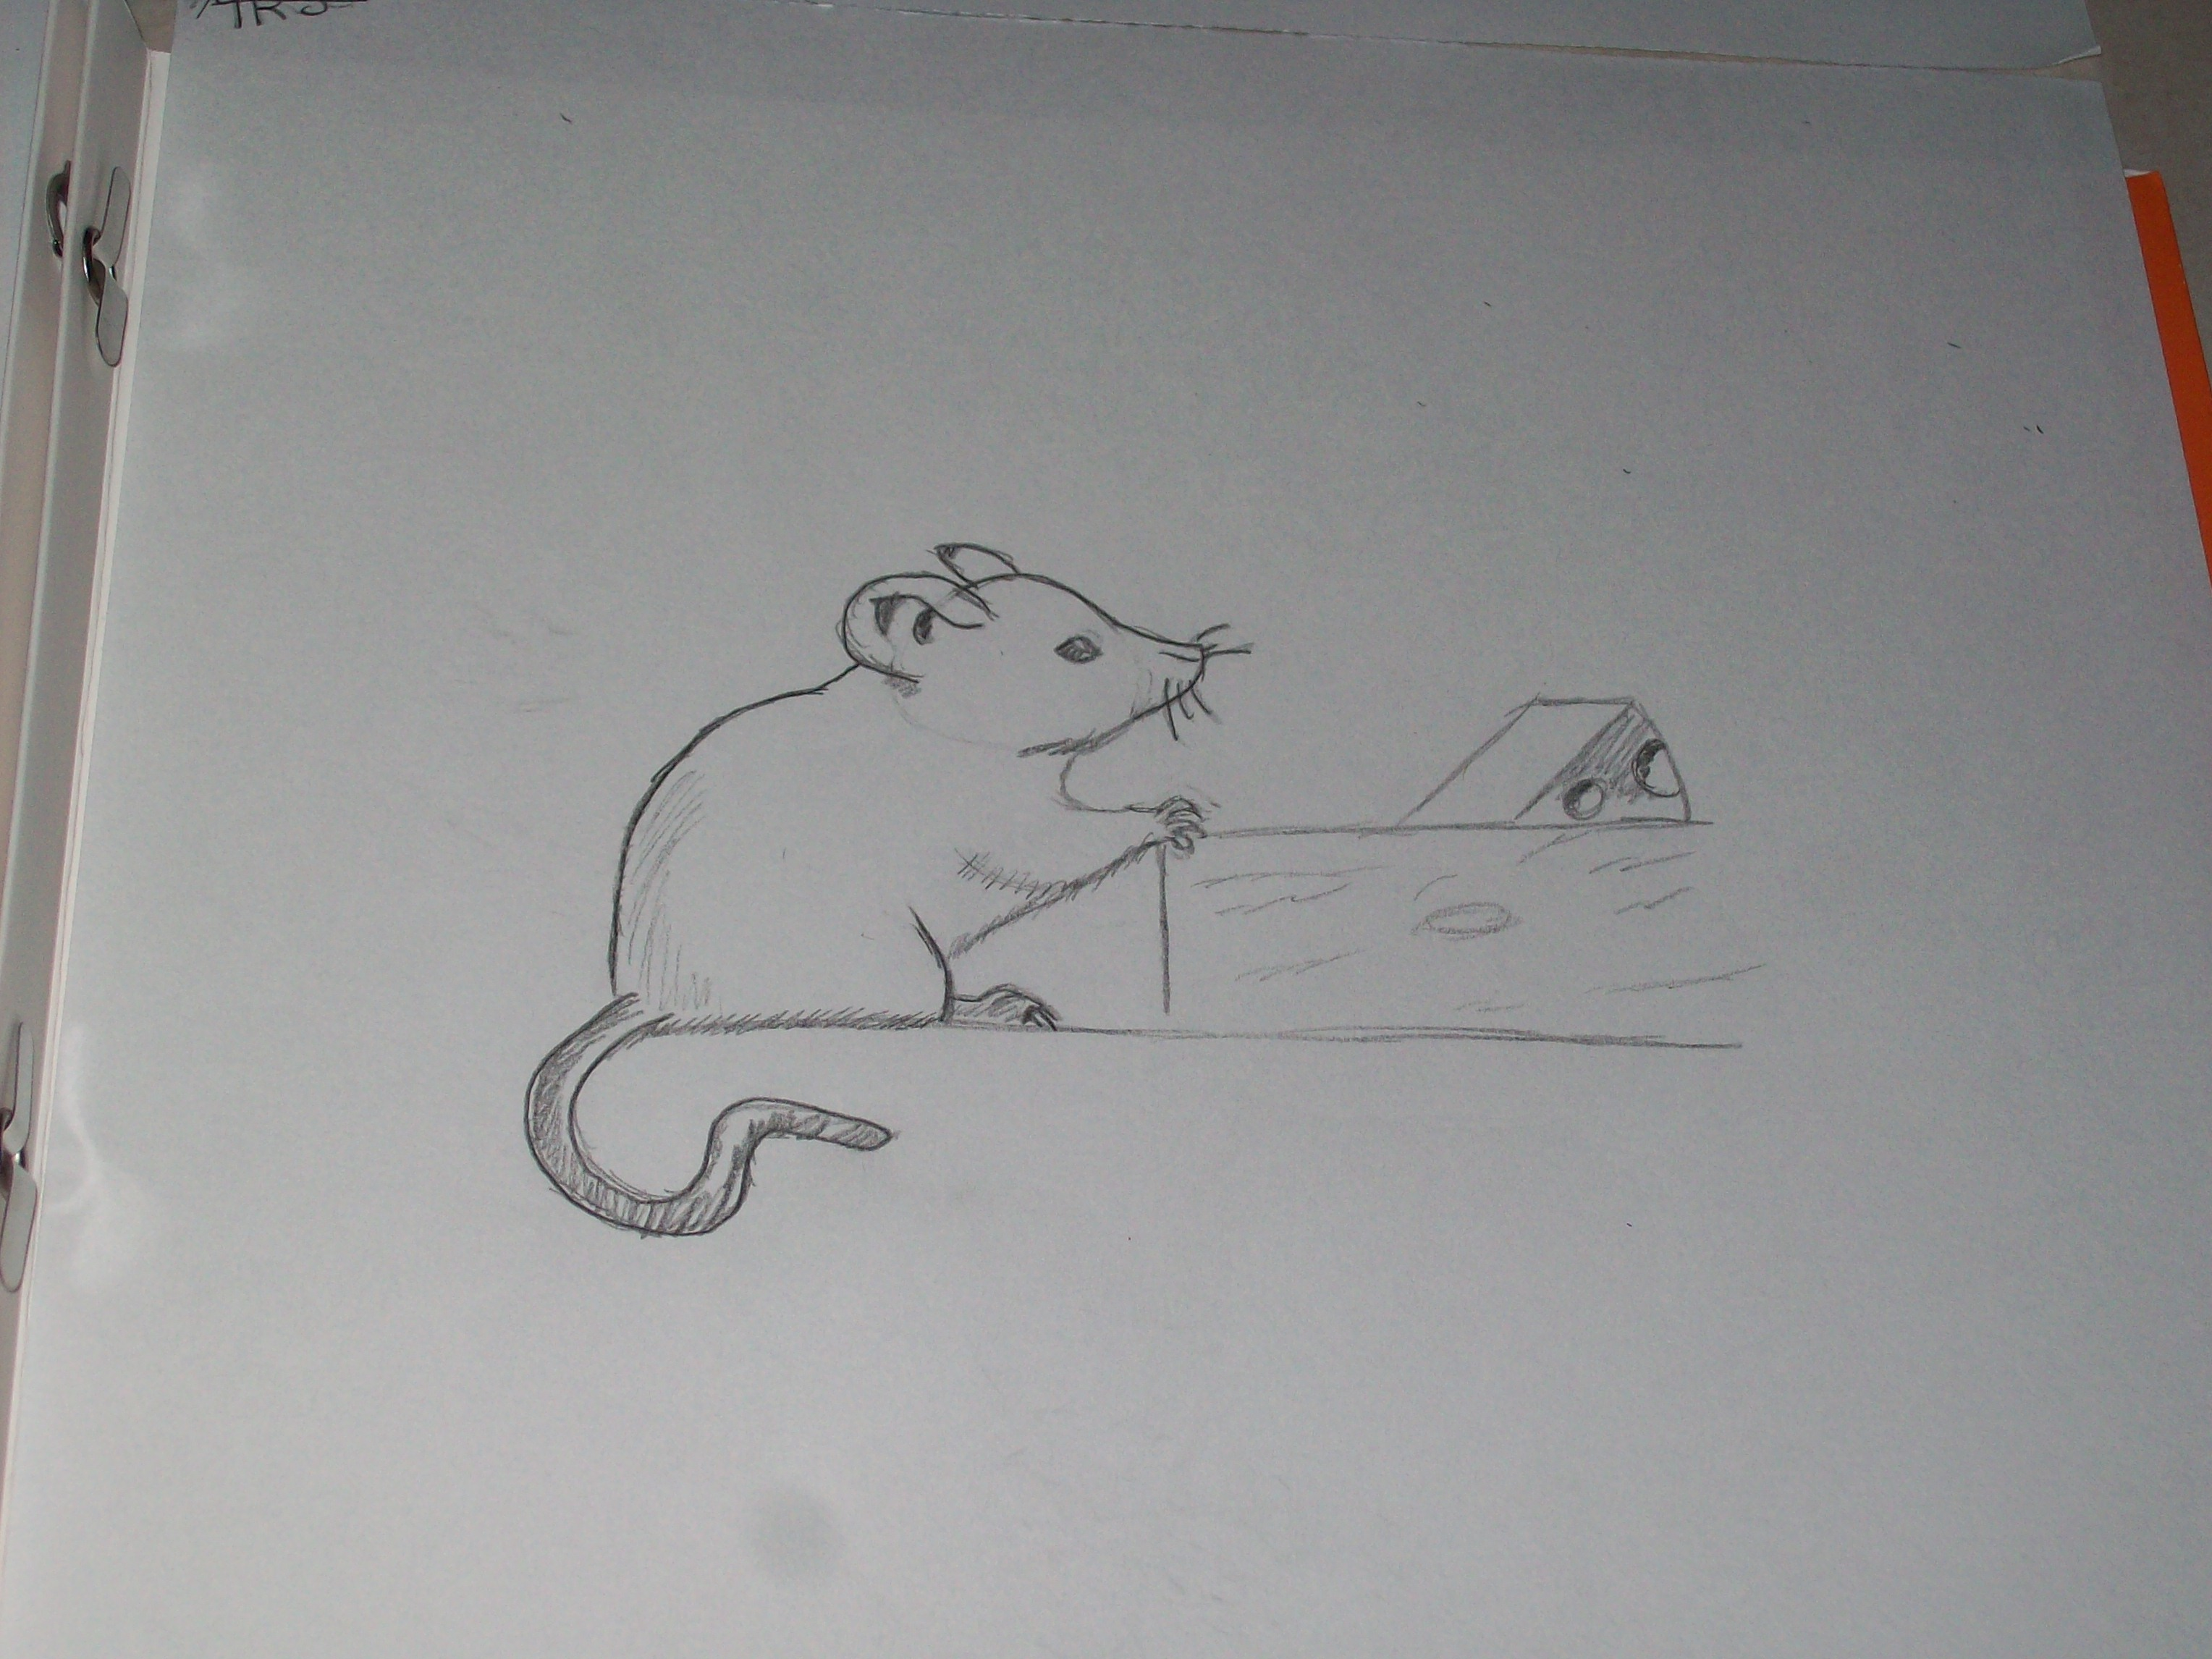 Drawn rodent cheese Cheese missy9309 And Aug Drawing